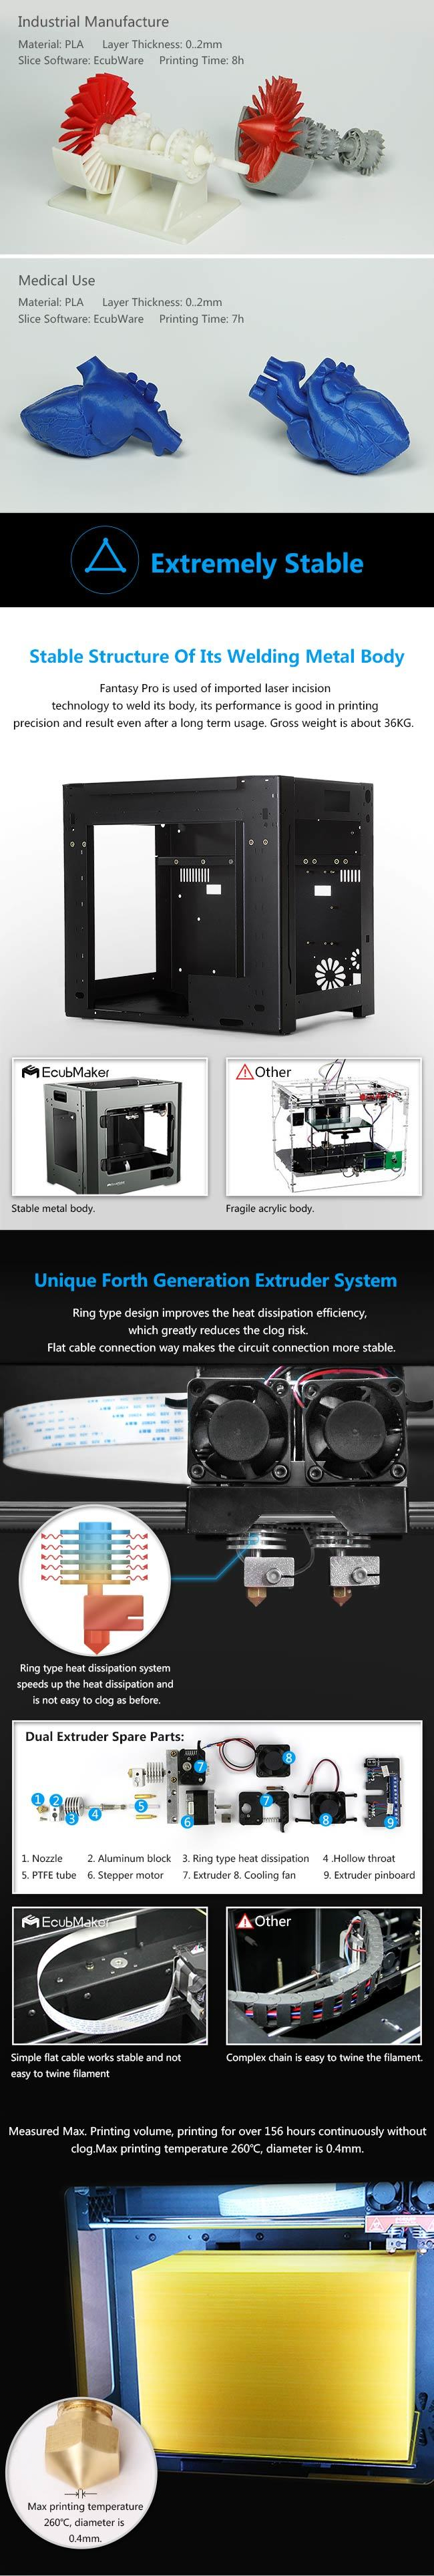 High End High Stability Rapid 3D Printing, Professional 3D Printer Industrial 3D Printer for Sale